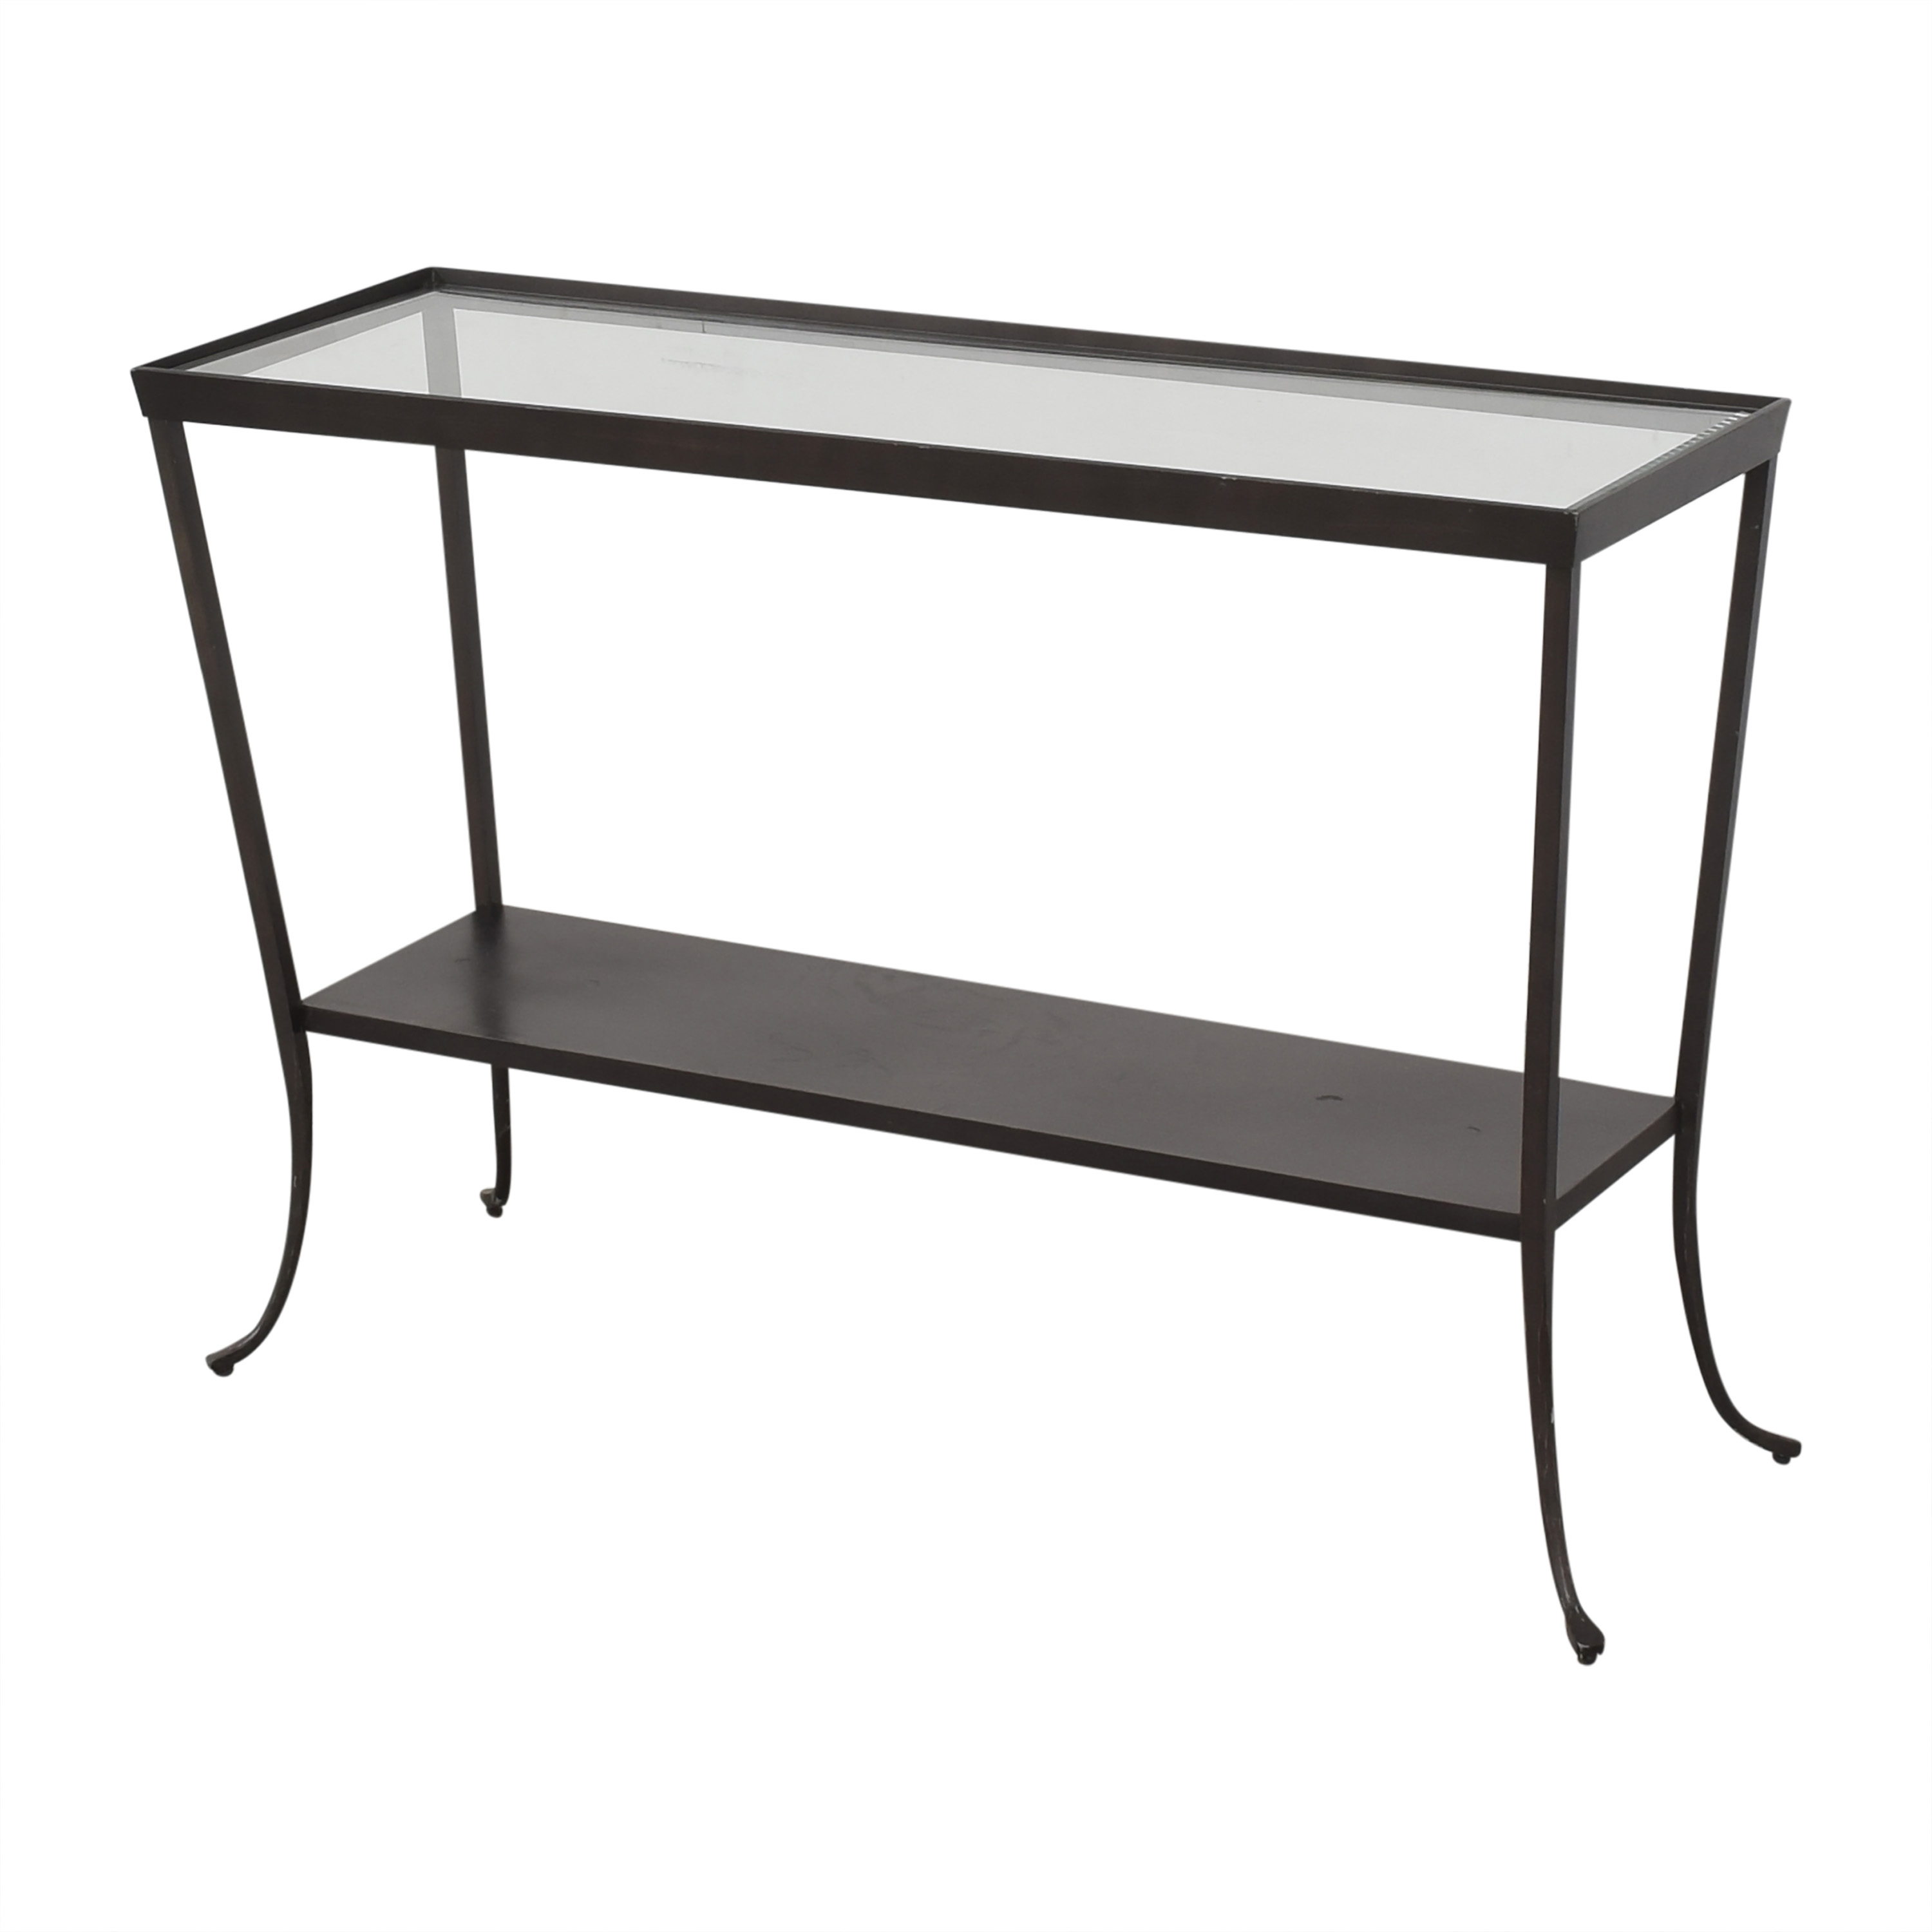 buy Crate & Barrel Crate & Barrel Console Table with Translucent Surface online